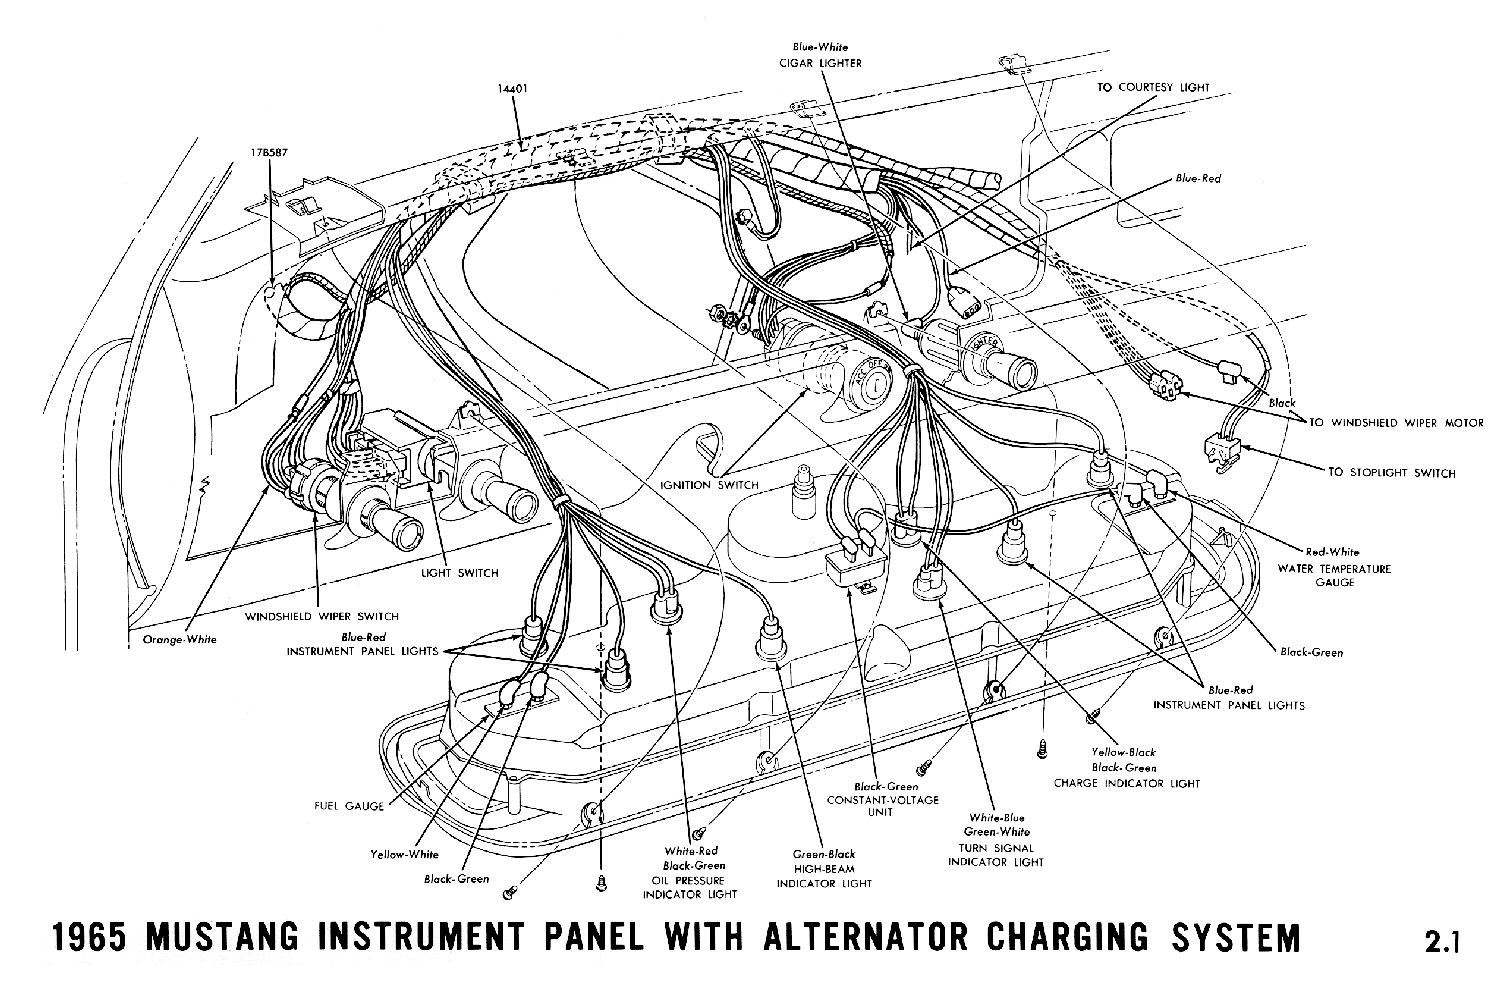 1965 Mustang Wiring Diagrams Average Joe Restoration Diagram Of Alternator 1965a